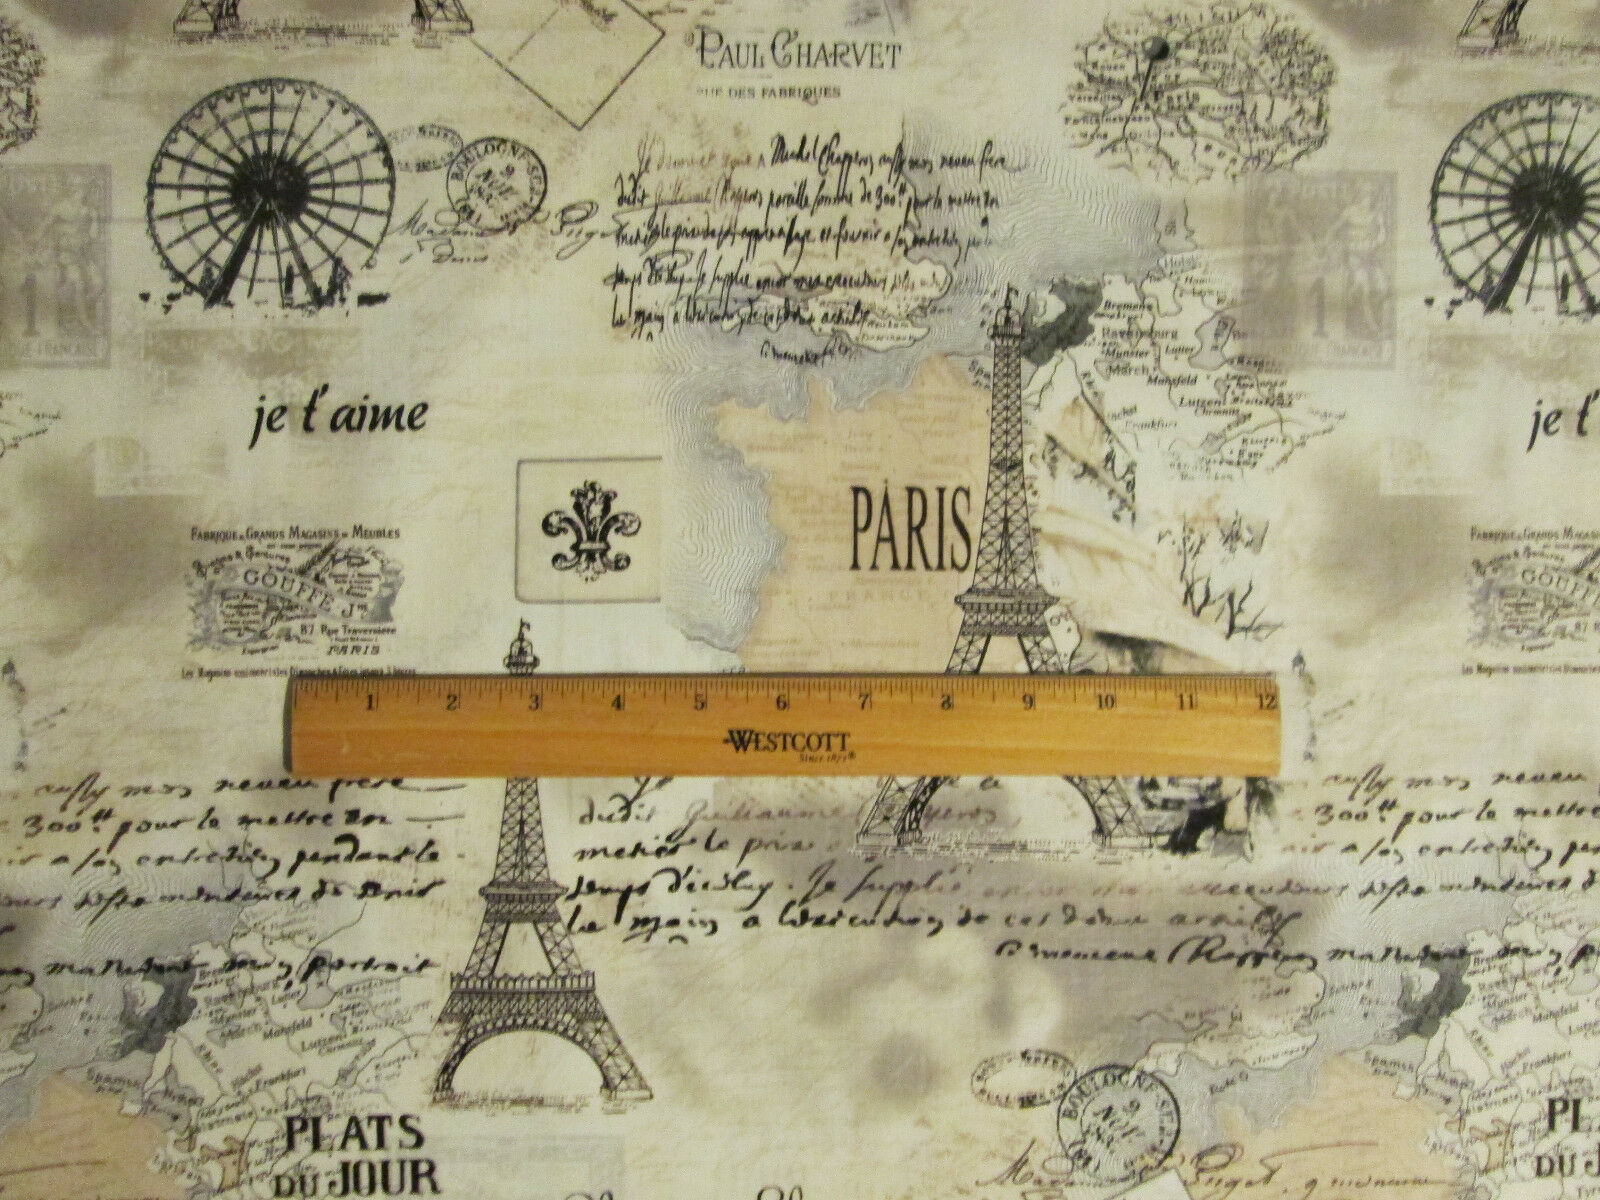 PARIS EIFFEL TOWER MAP SCRIBE TANS COTTON FABRIC BTHY - Paris map fabric